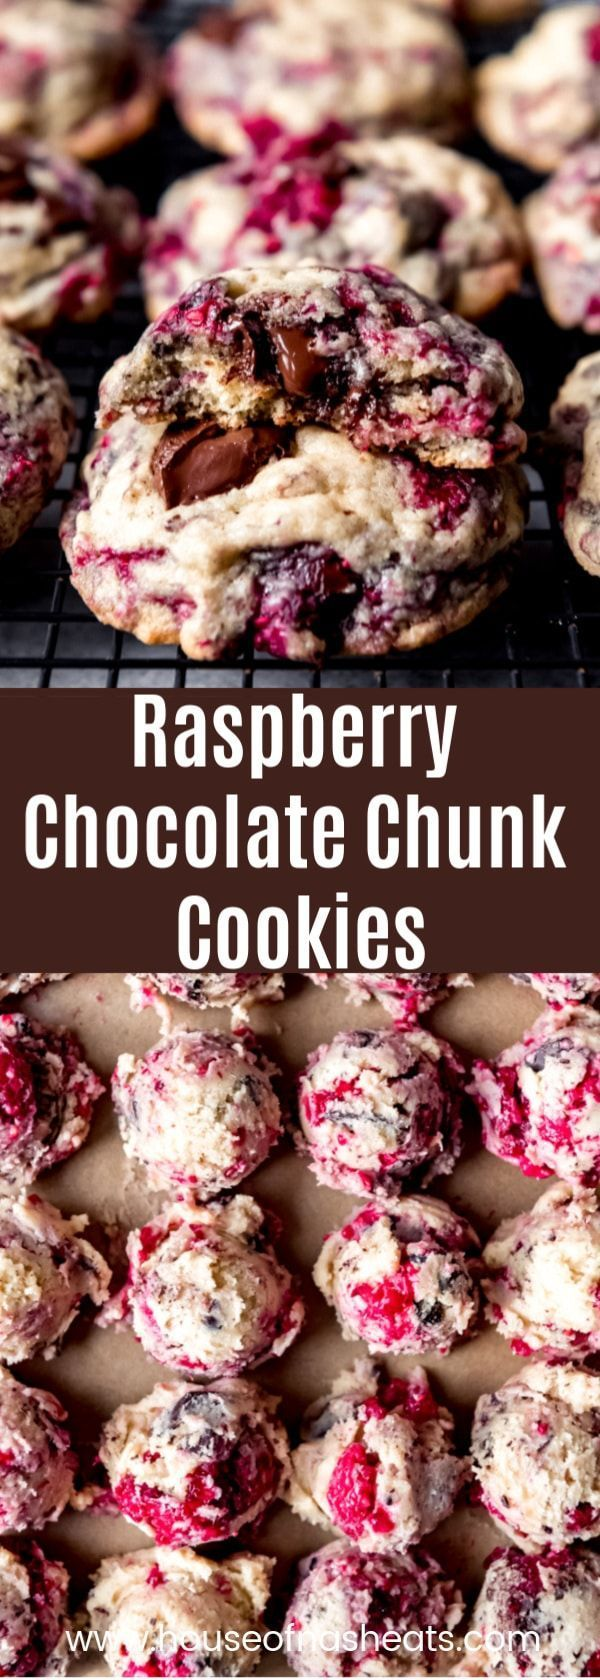 Bursting with fresh raspberry flavor and studded with chunks of melted dark chocolate these Raspberry Chocolate Chunk Cookies take your classic chocolate chip cookies to...